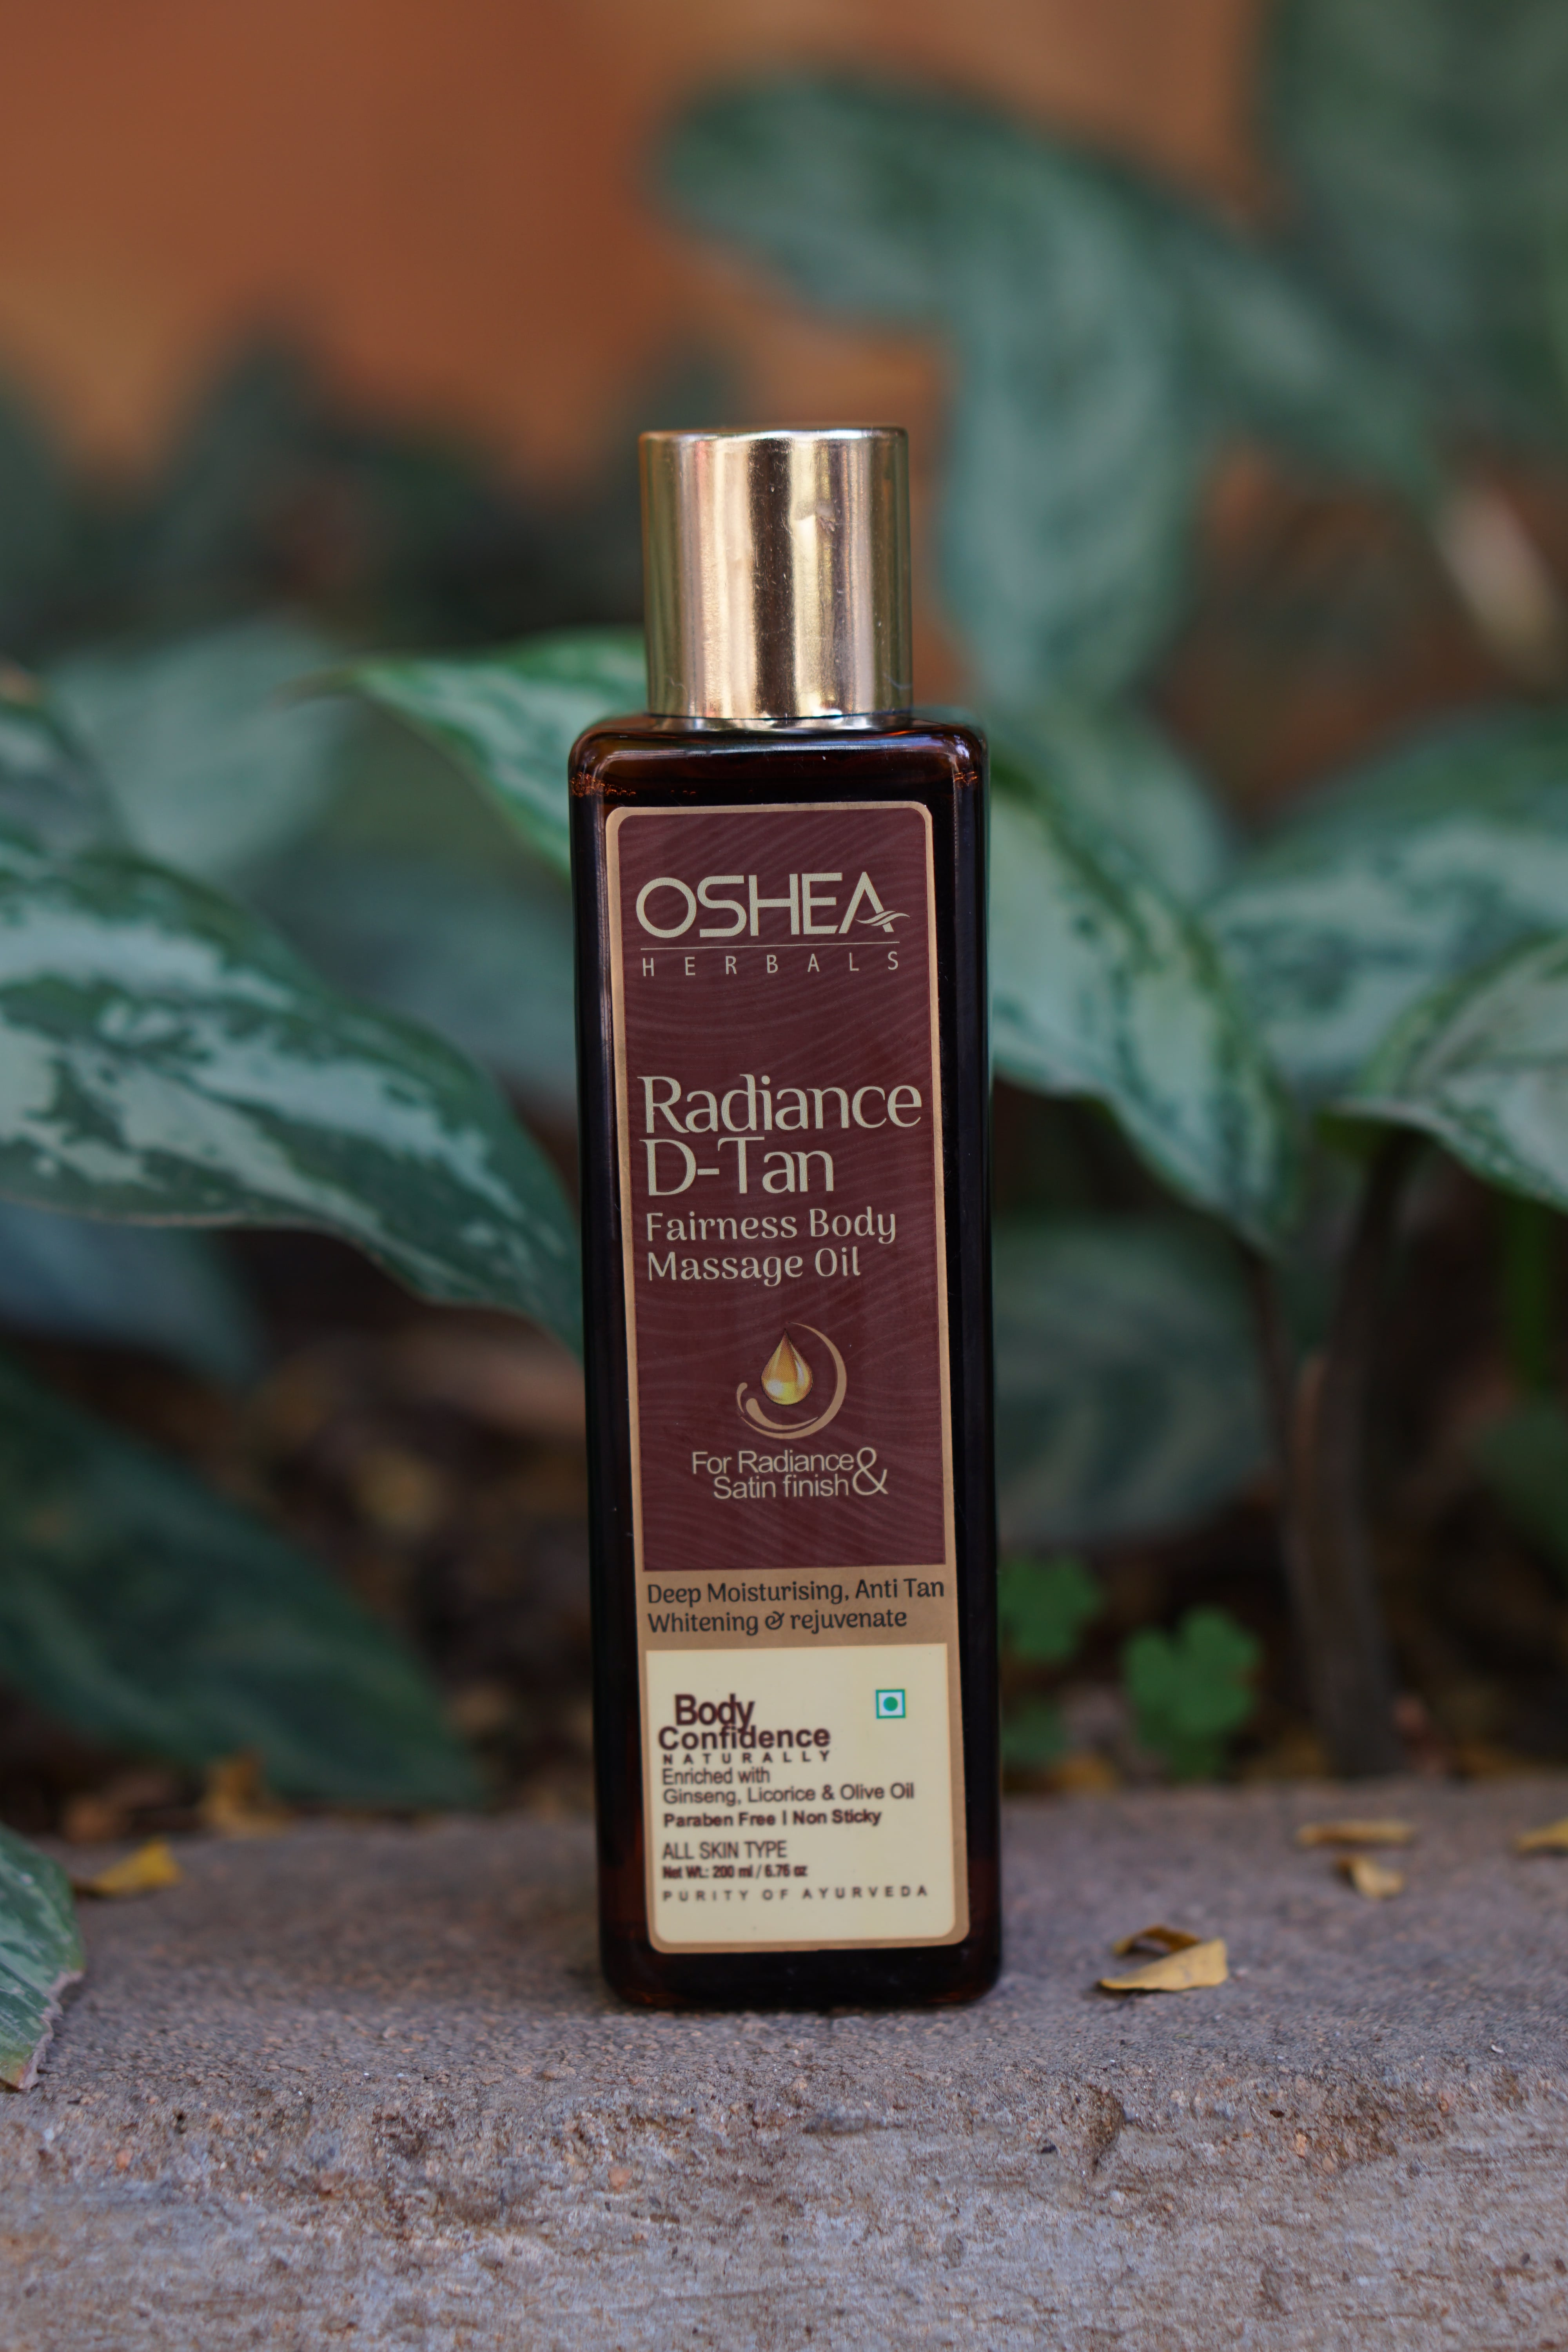 Oshea's Radiance D-Tan Fairness Body Massage Oil Review